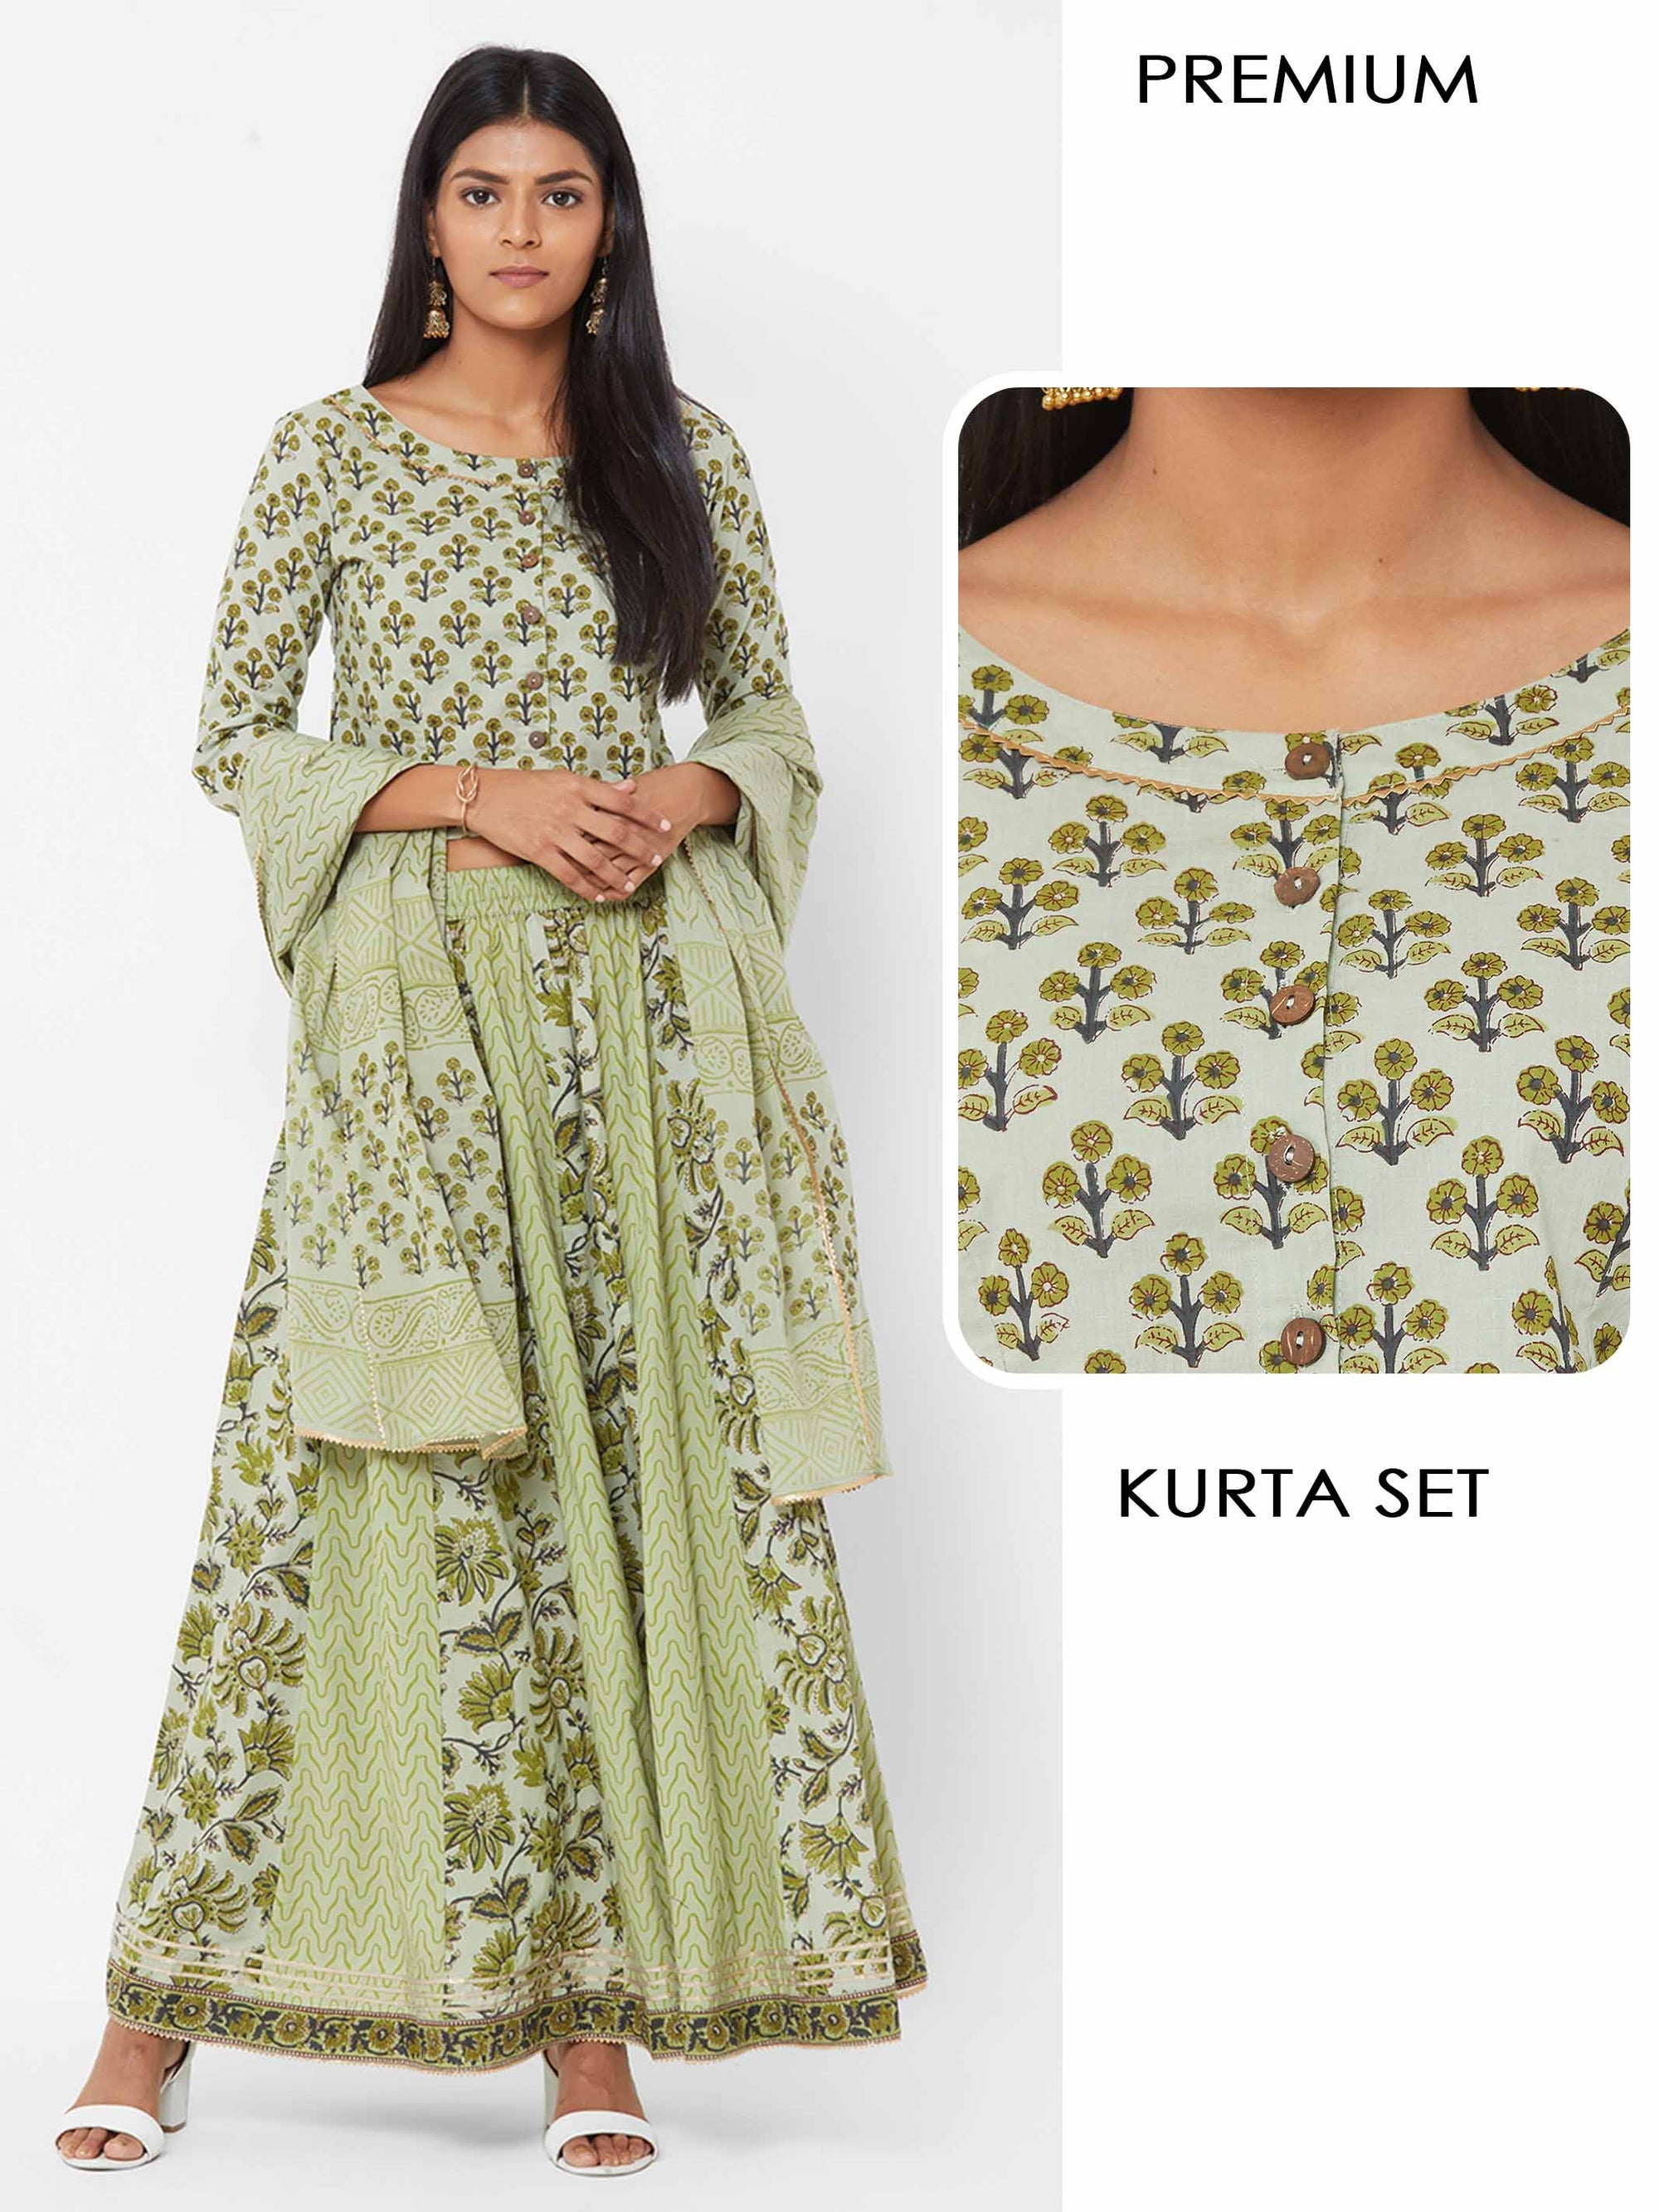 Floral printed Blouse with Mix printed Skirt with Printed Dupatta – Pista Green